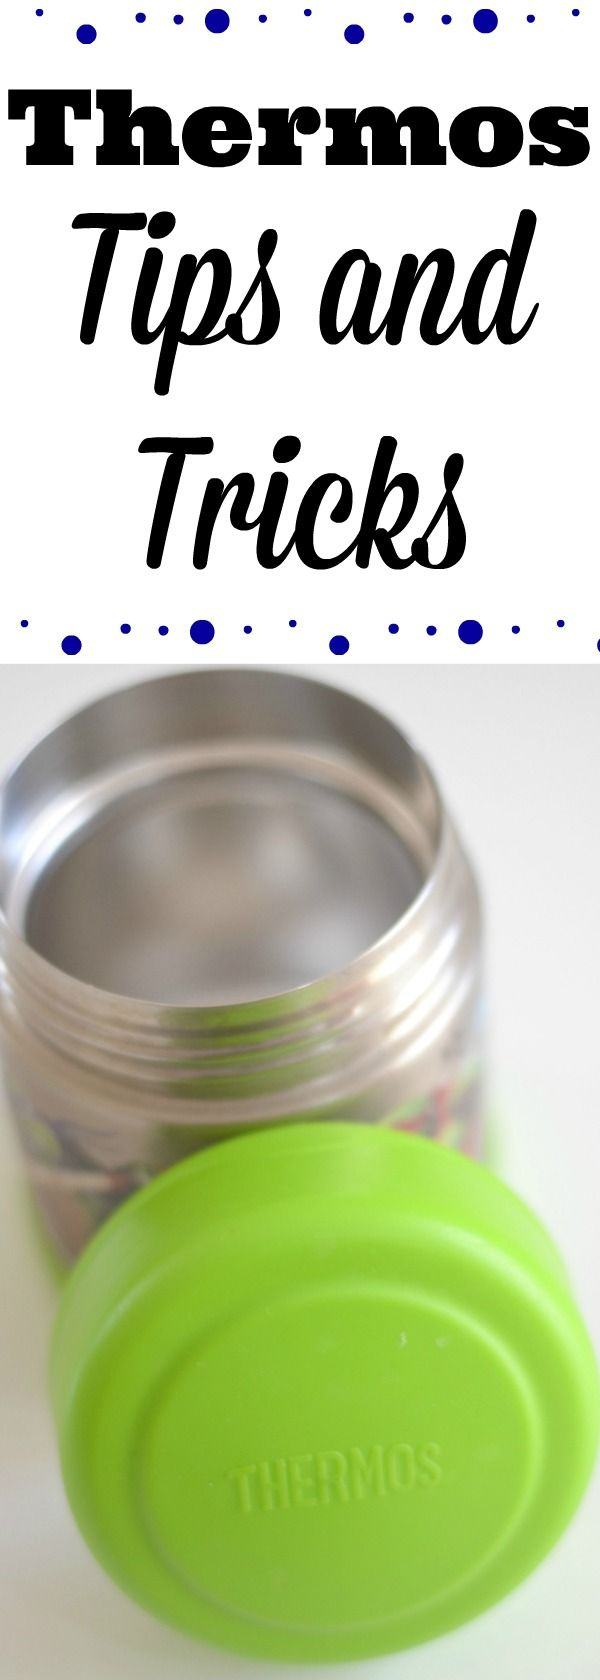 how to use a thermos